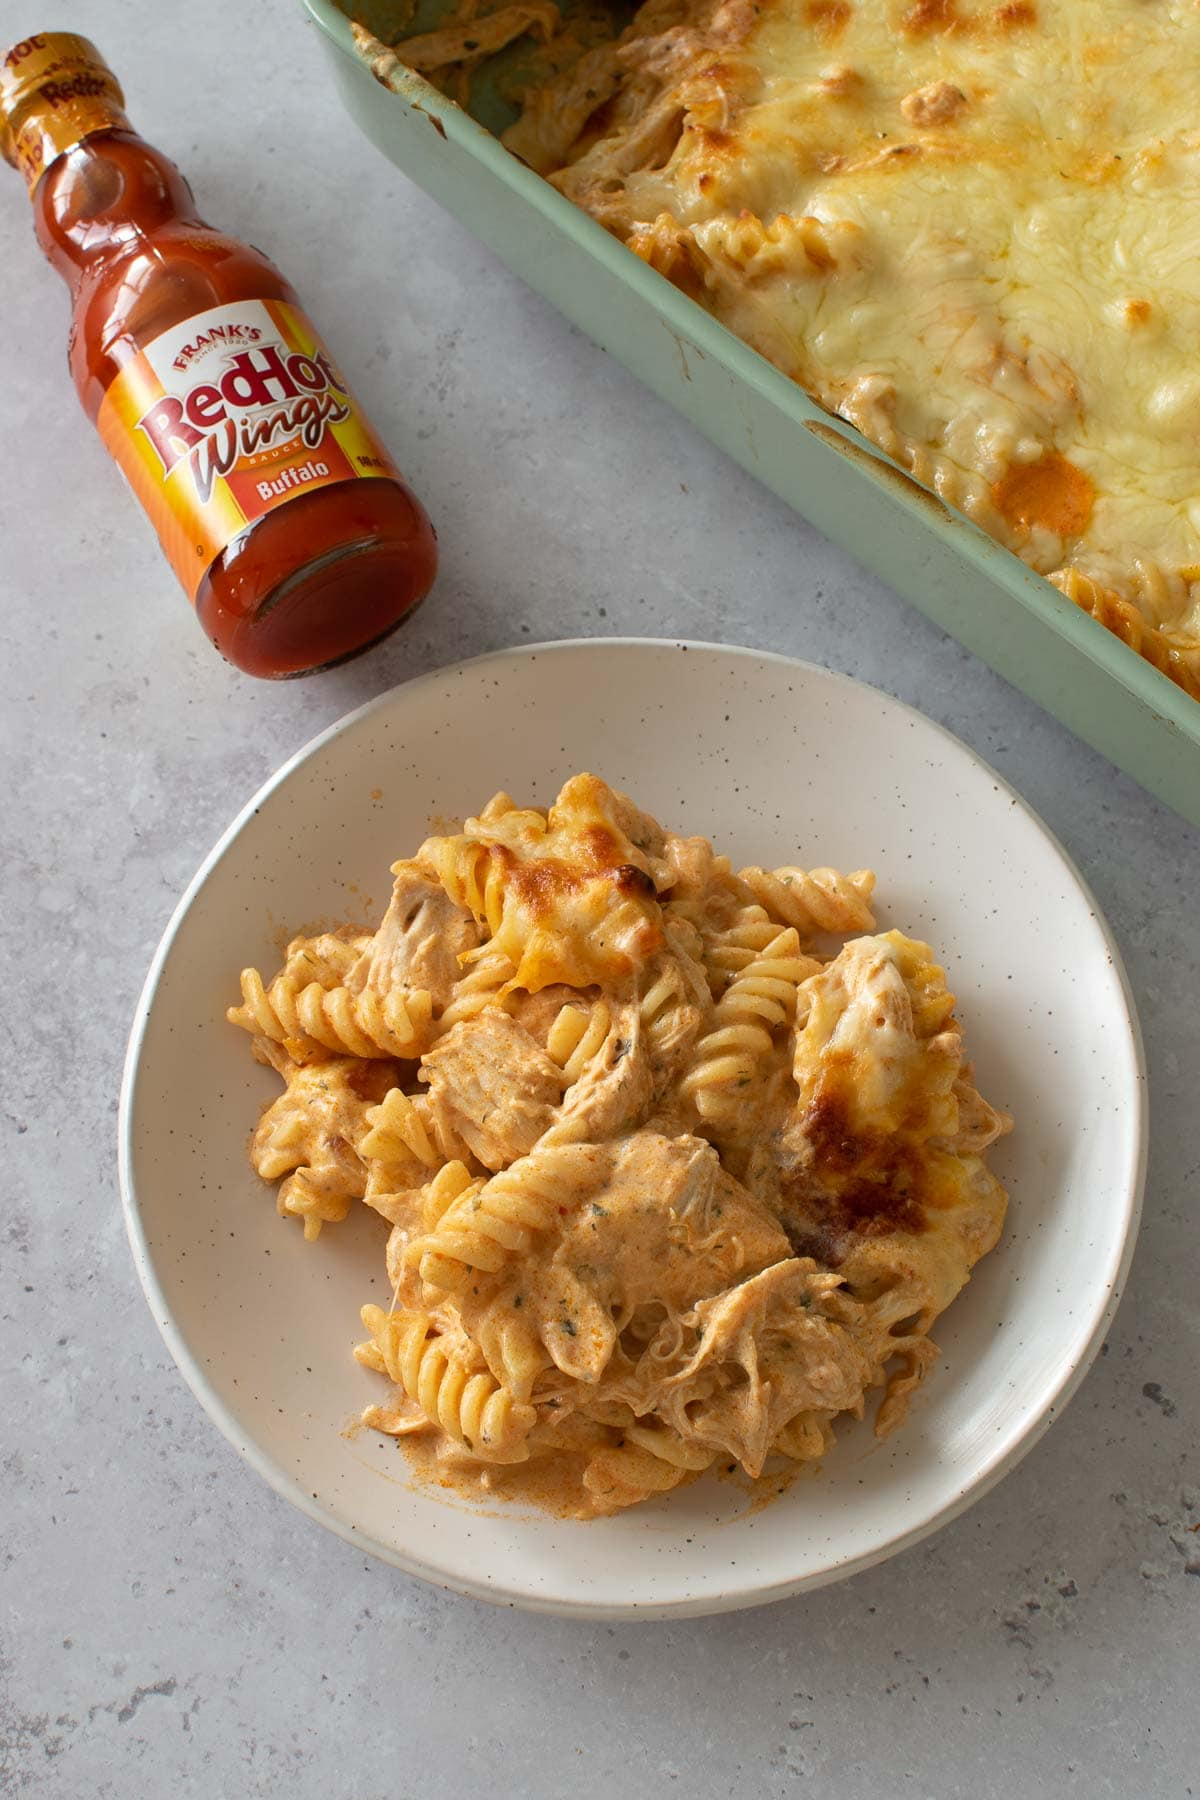 A plate of Buffalo chicken pasta bake with buffalo sauce on the side.